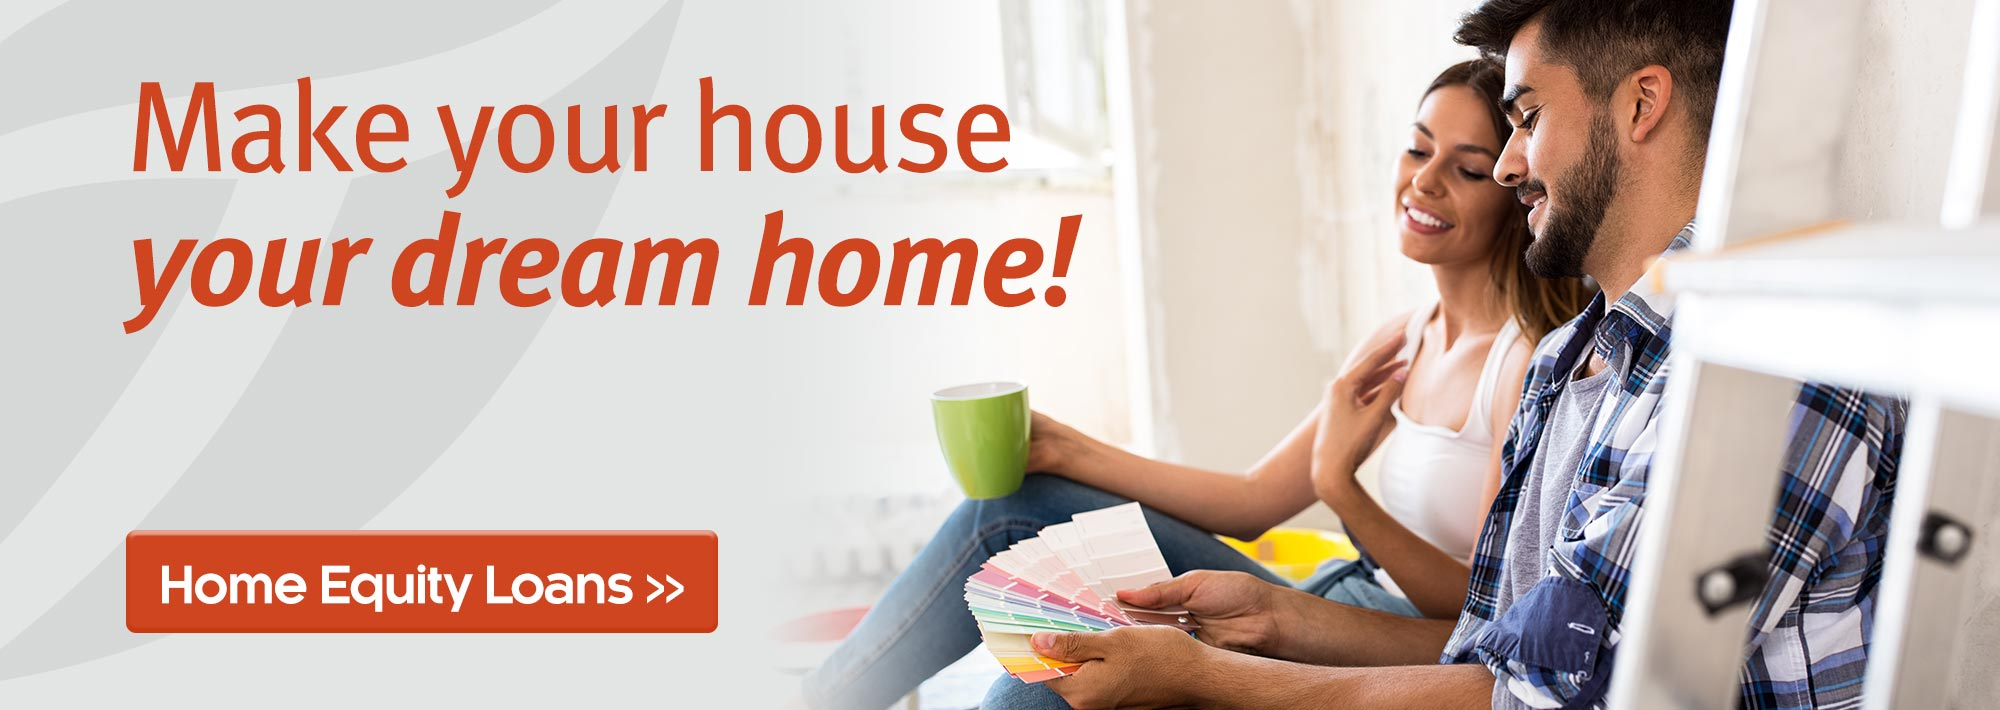 Make your house your dream home. Home equity loans